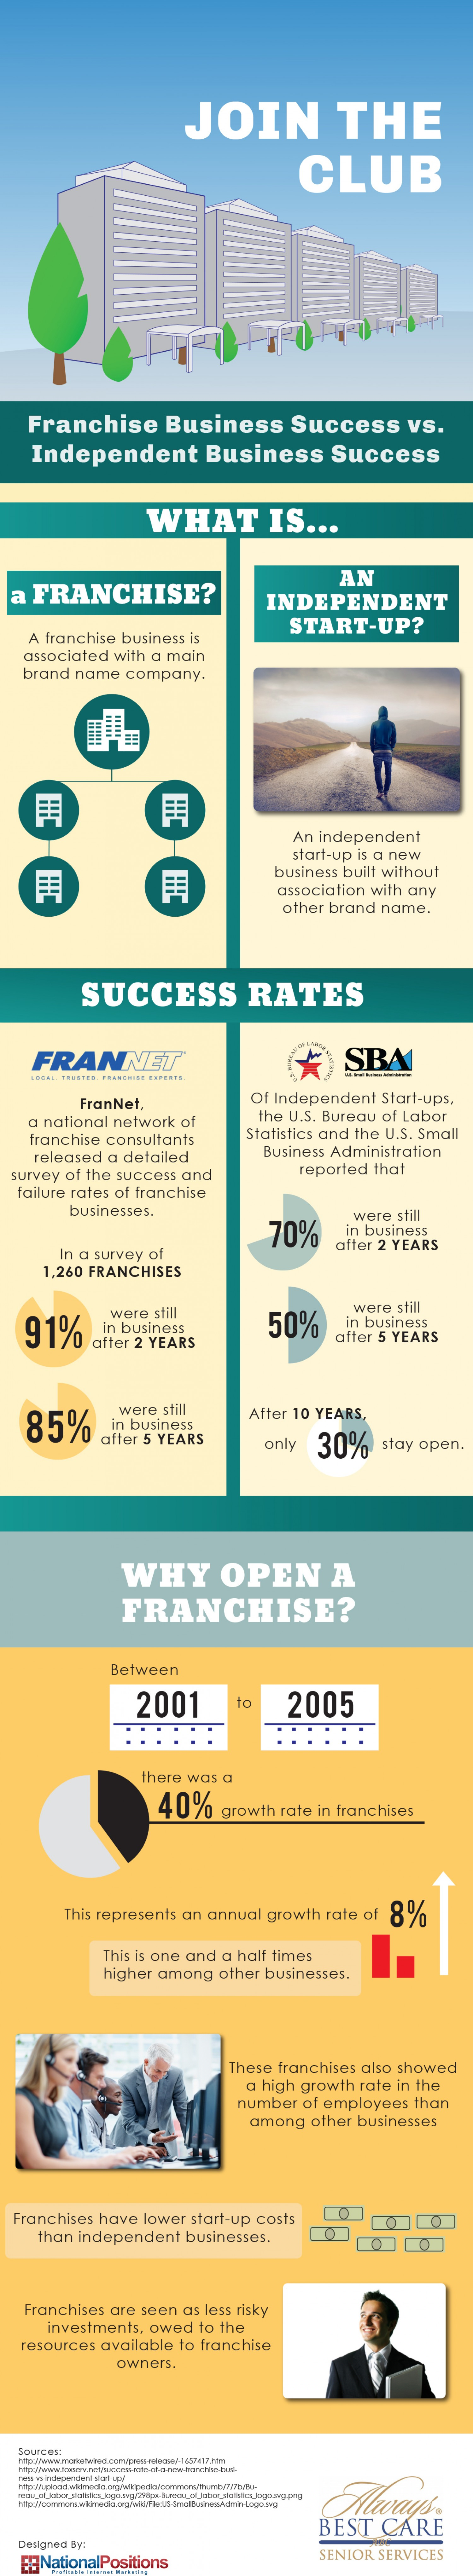 Franchise Business Success vs. Independent Business